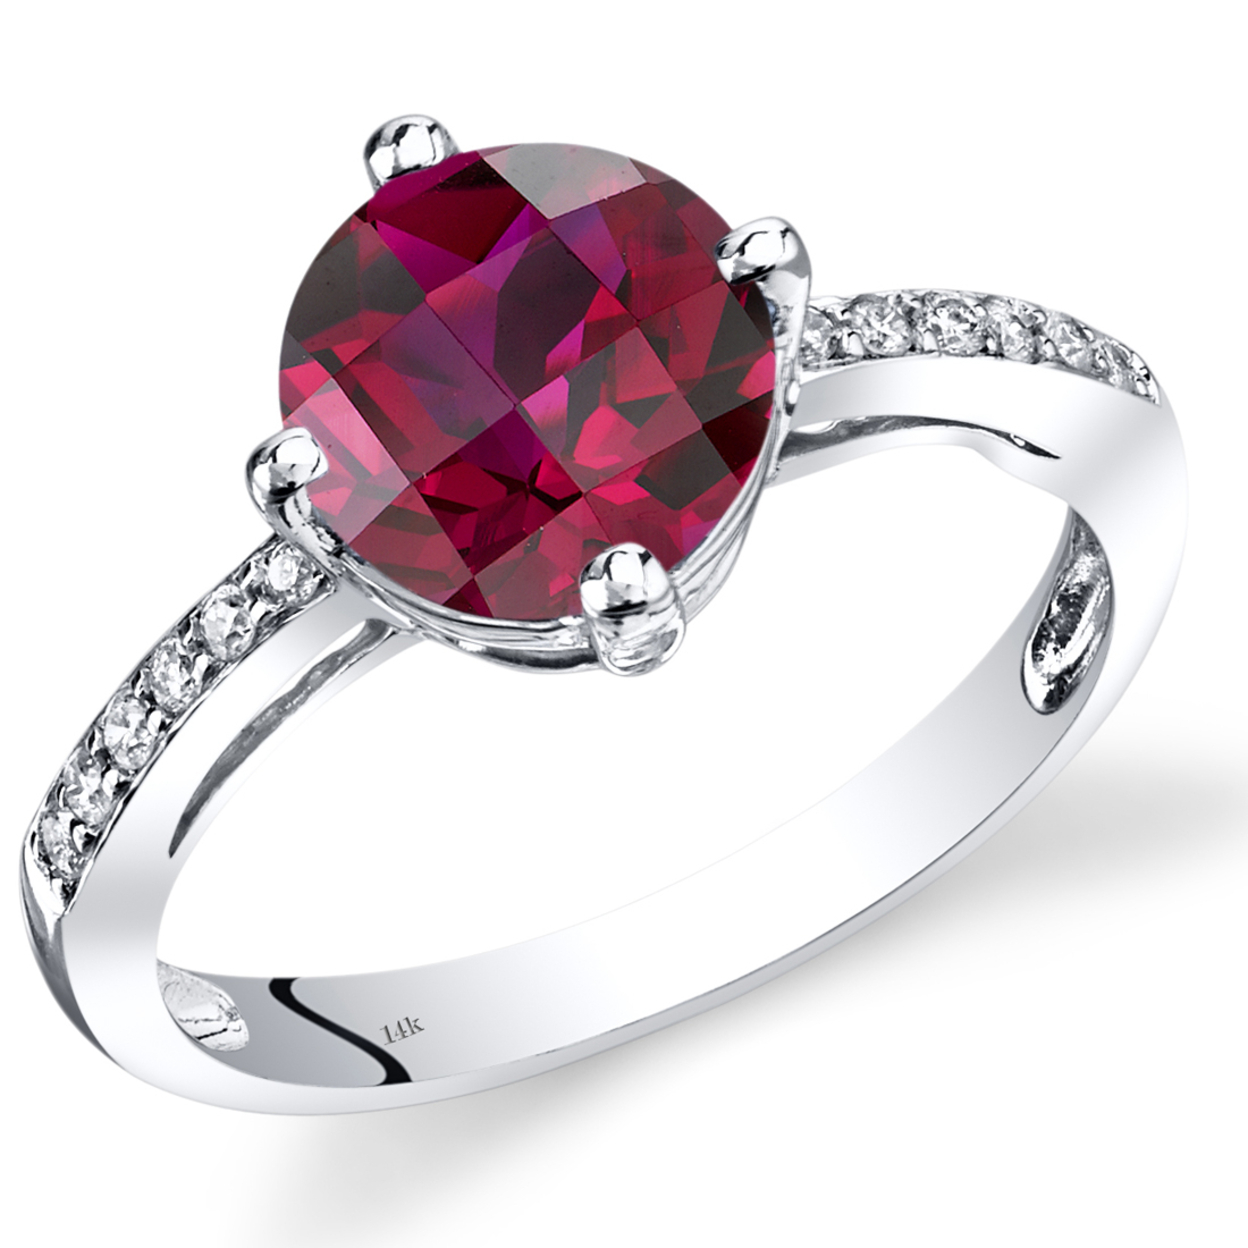 14k White Gold Created Ruby Solitaire Diamond Accent Ring 2.5 Carats Total